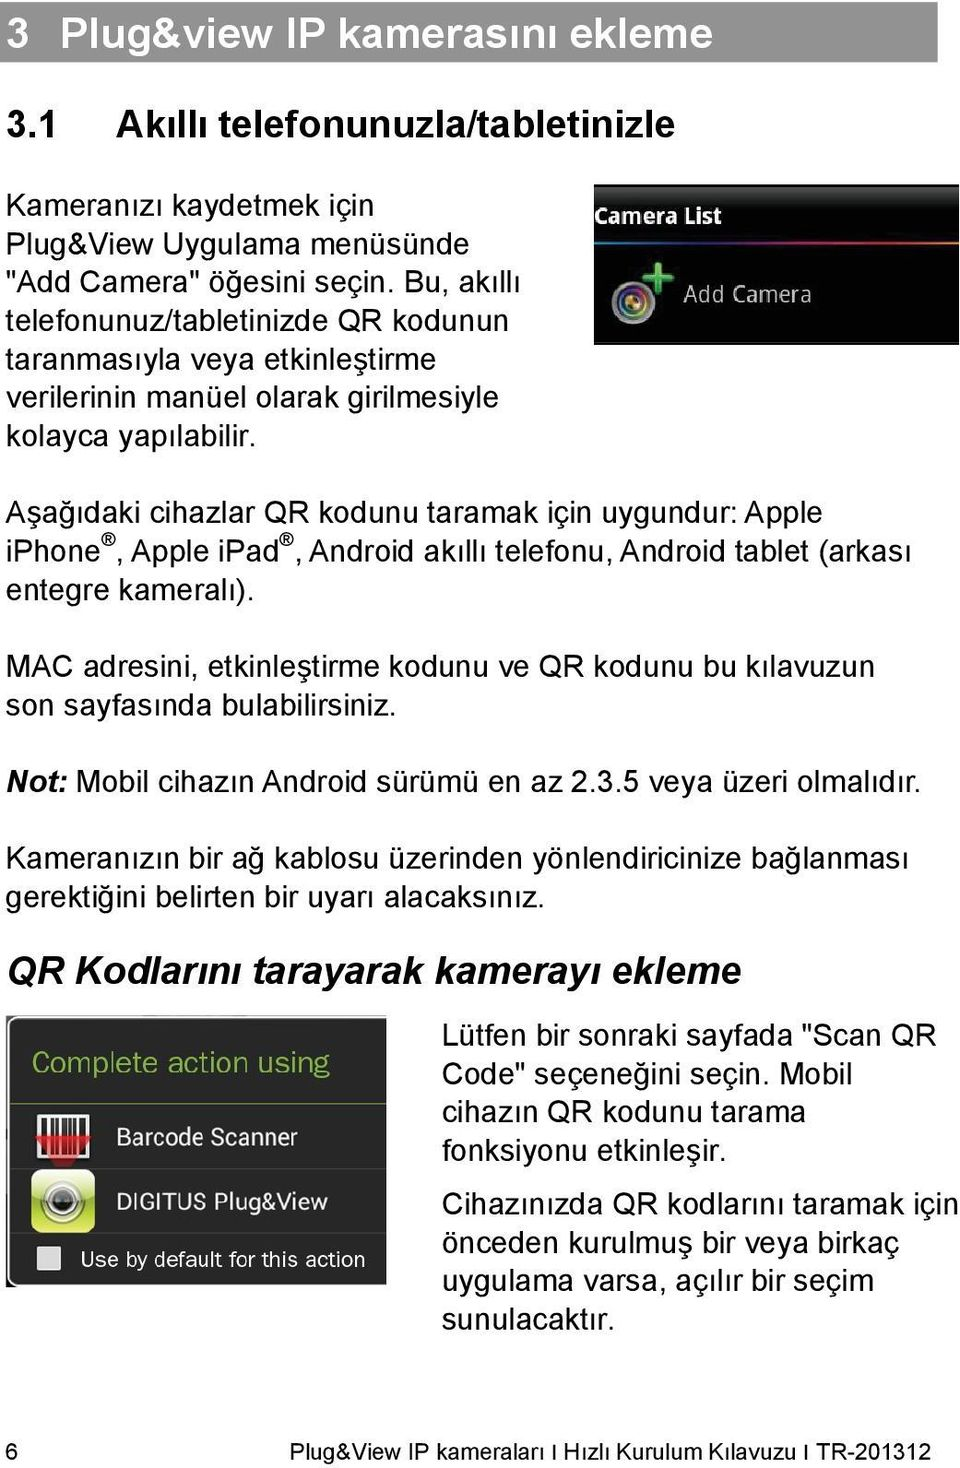 Aşağıdaki cihazlar QR kodunu taramak için uygundur: Apple iphone, Apple ipad, Android akıllı telefonu, Android tablet (arkası entegre kameralı).